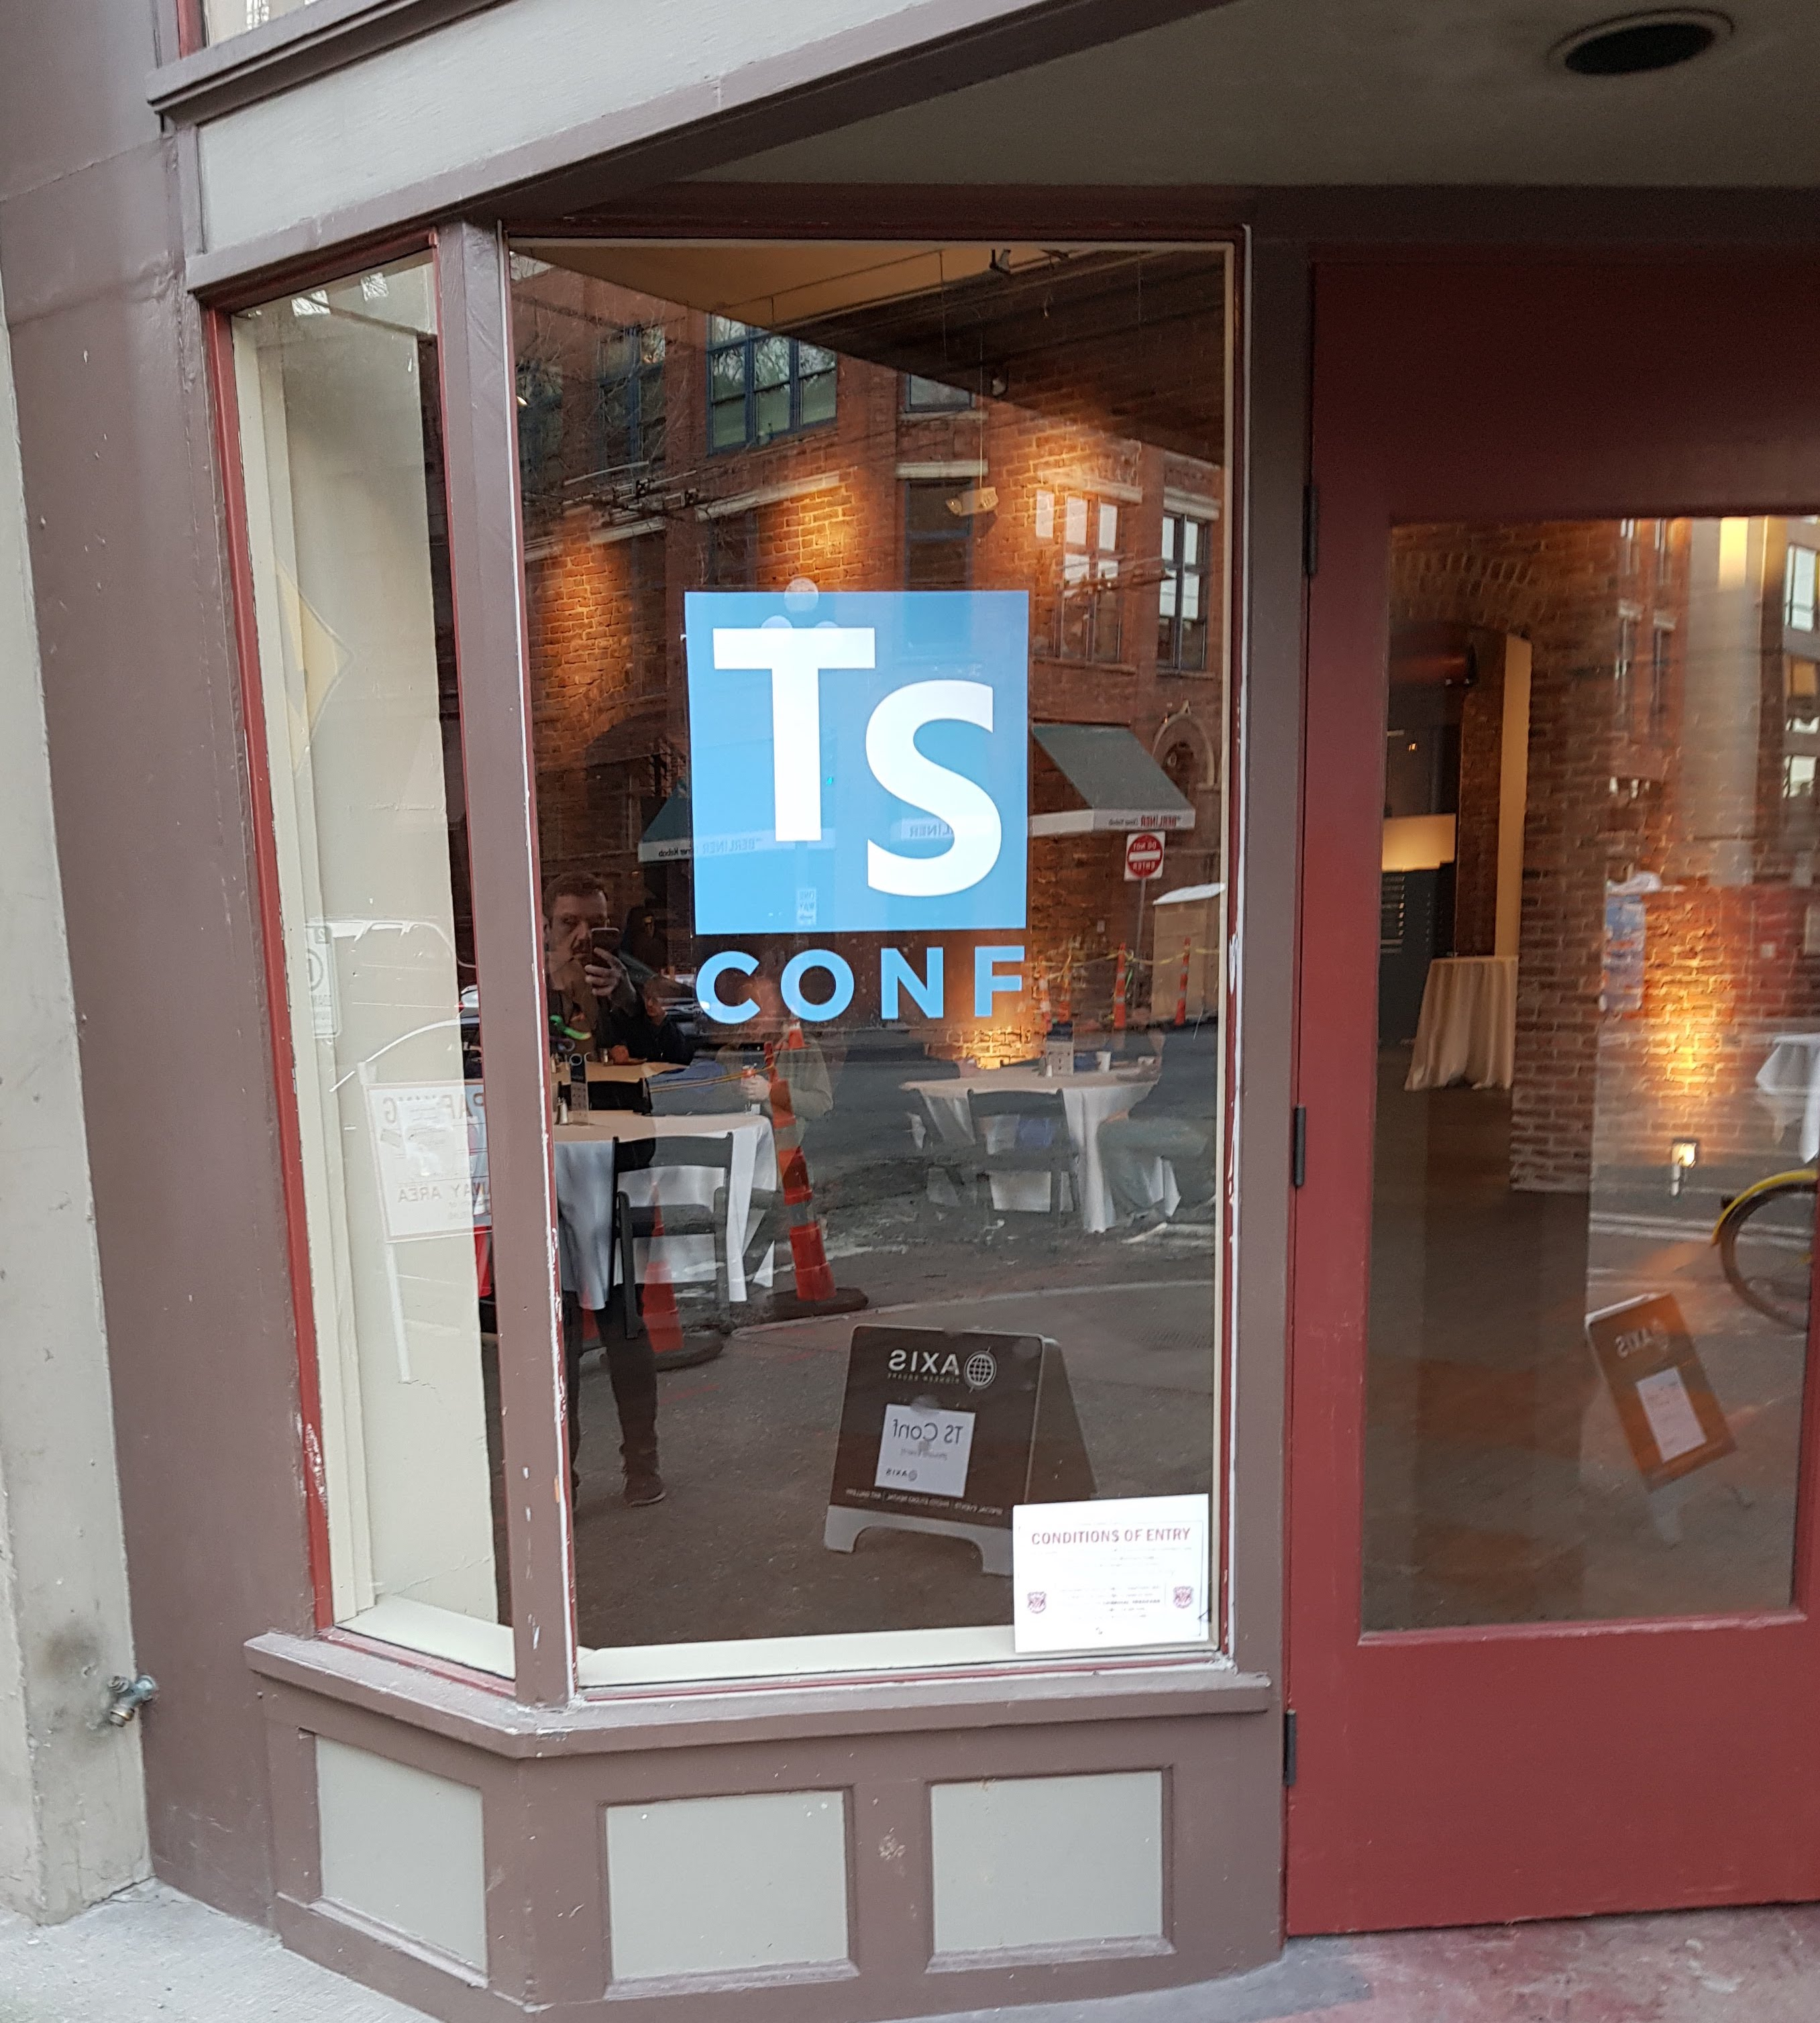 Entrance to TSConf at Axis in Seattle